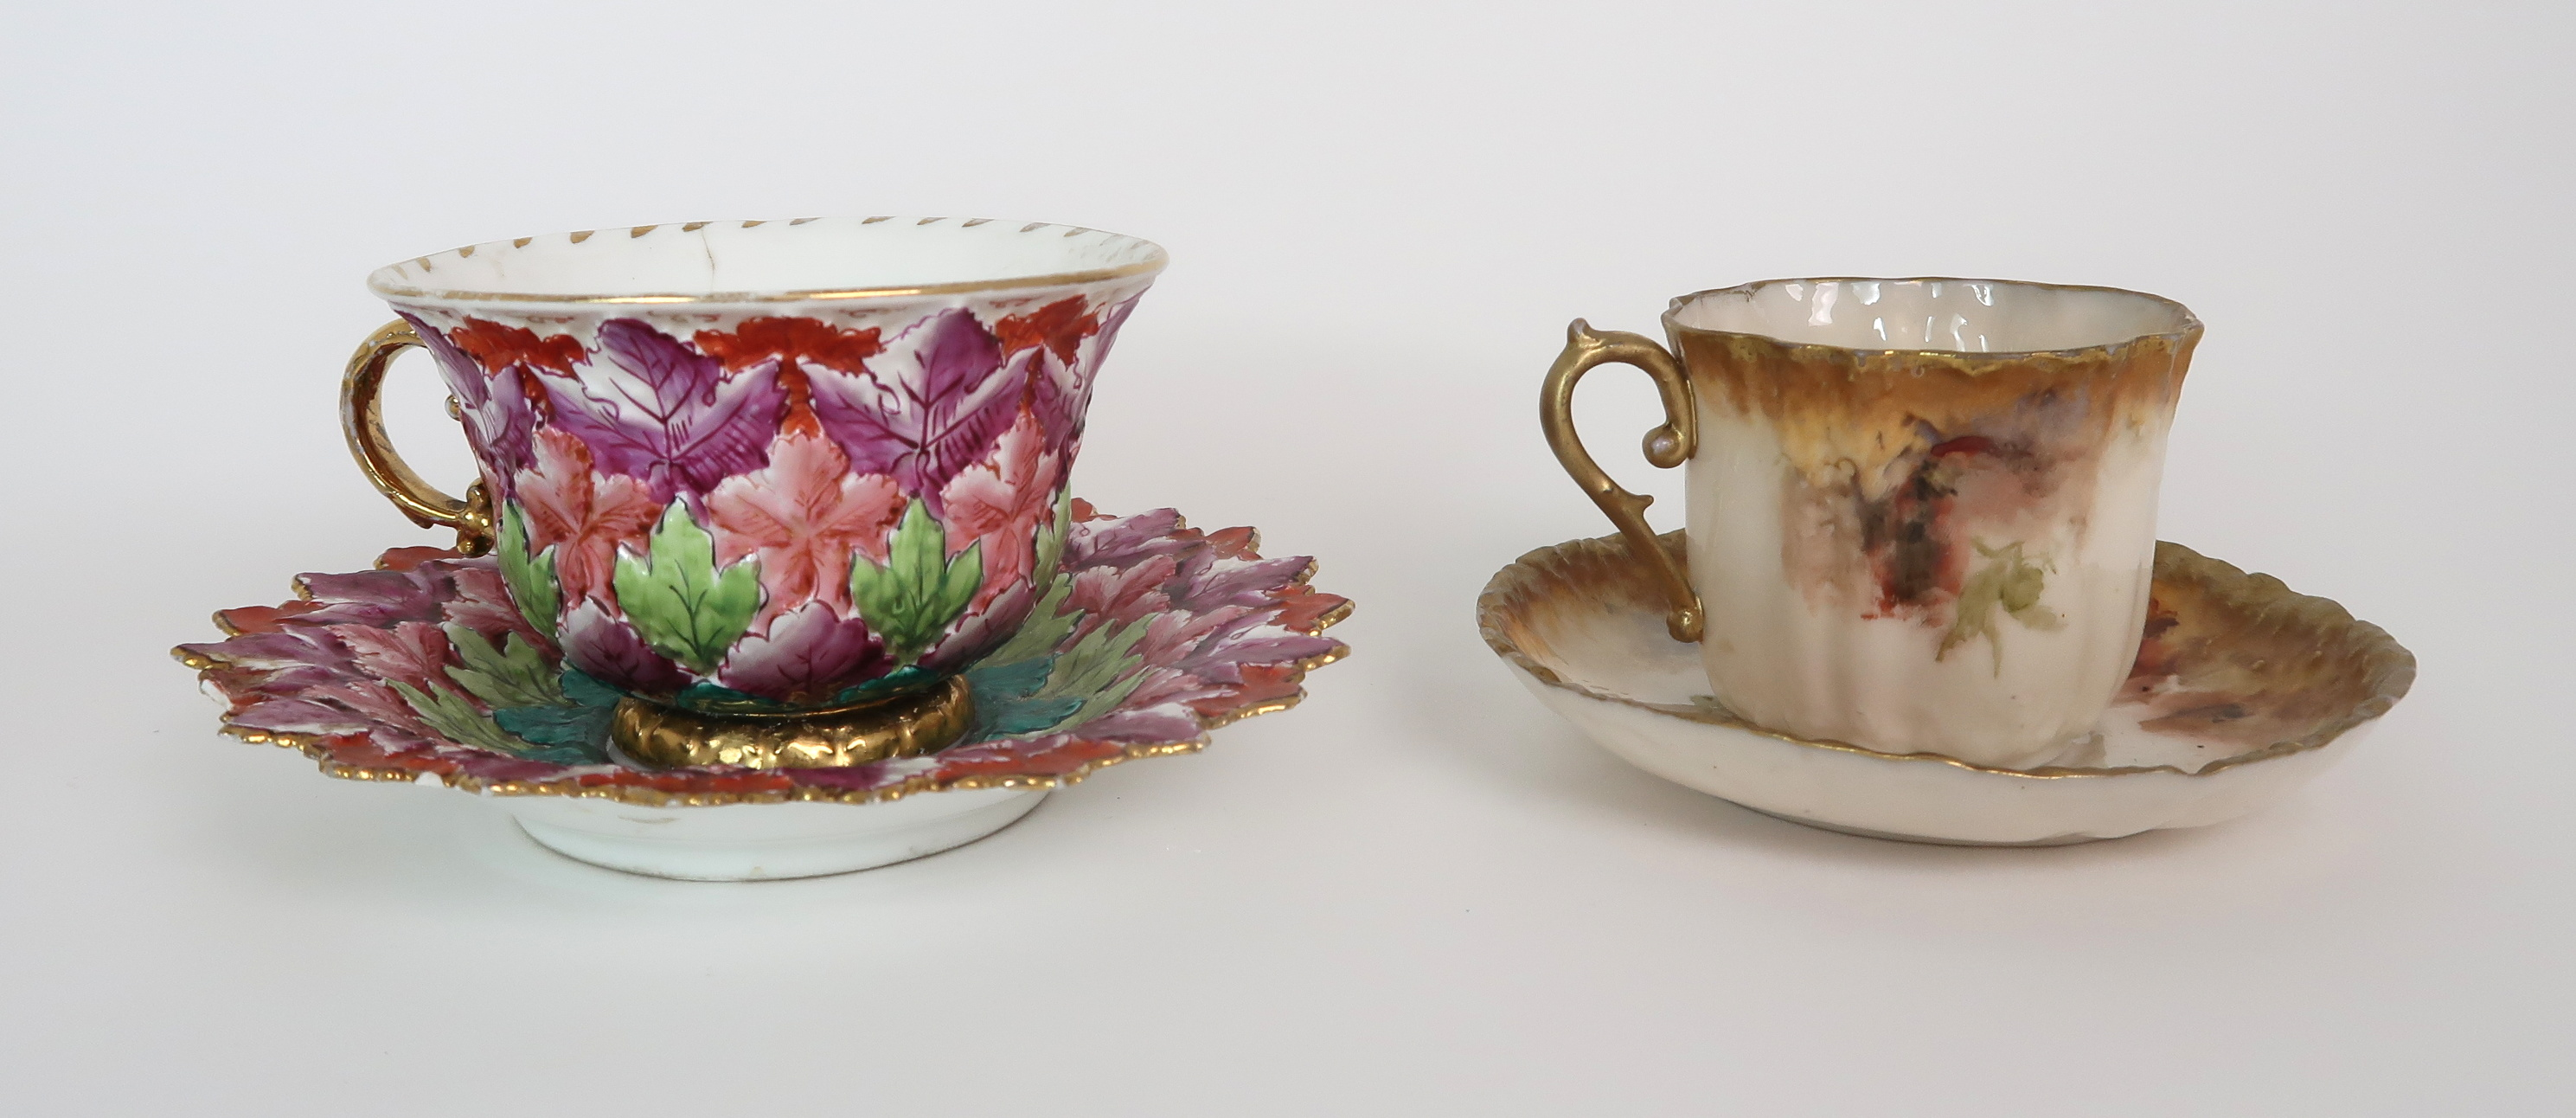 THREE CAPODIMONTE CUPS AND SAUCERS decorated with bacchanalian scenes, a pair of Sevres pots - Image 11 of 16